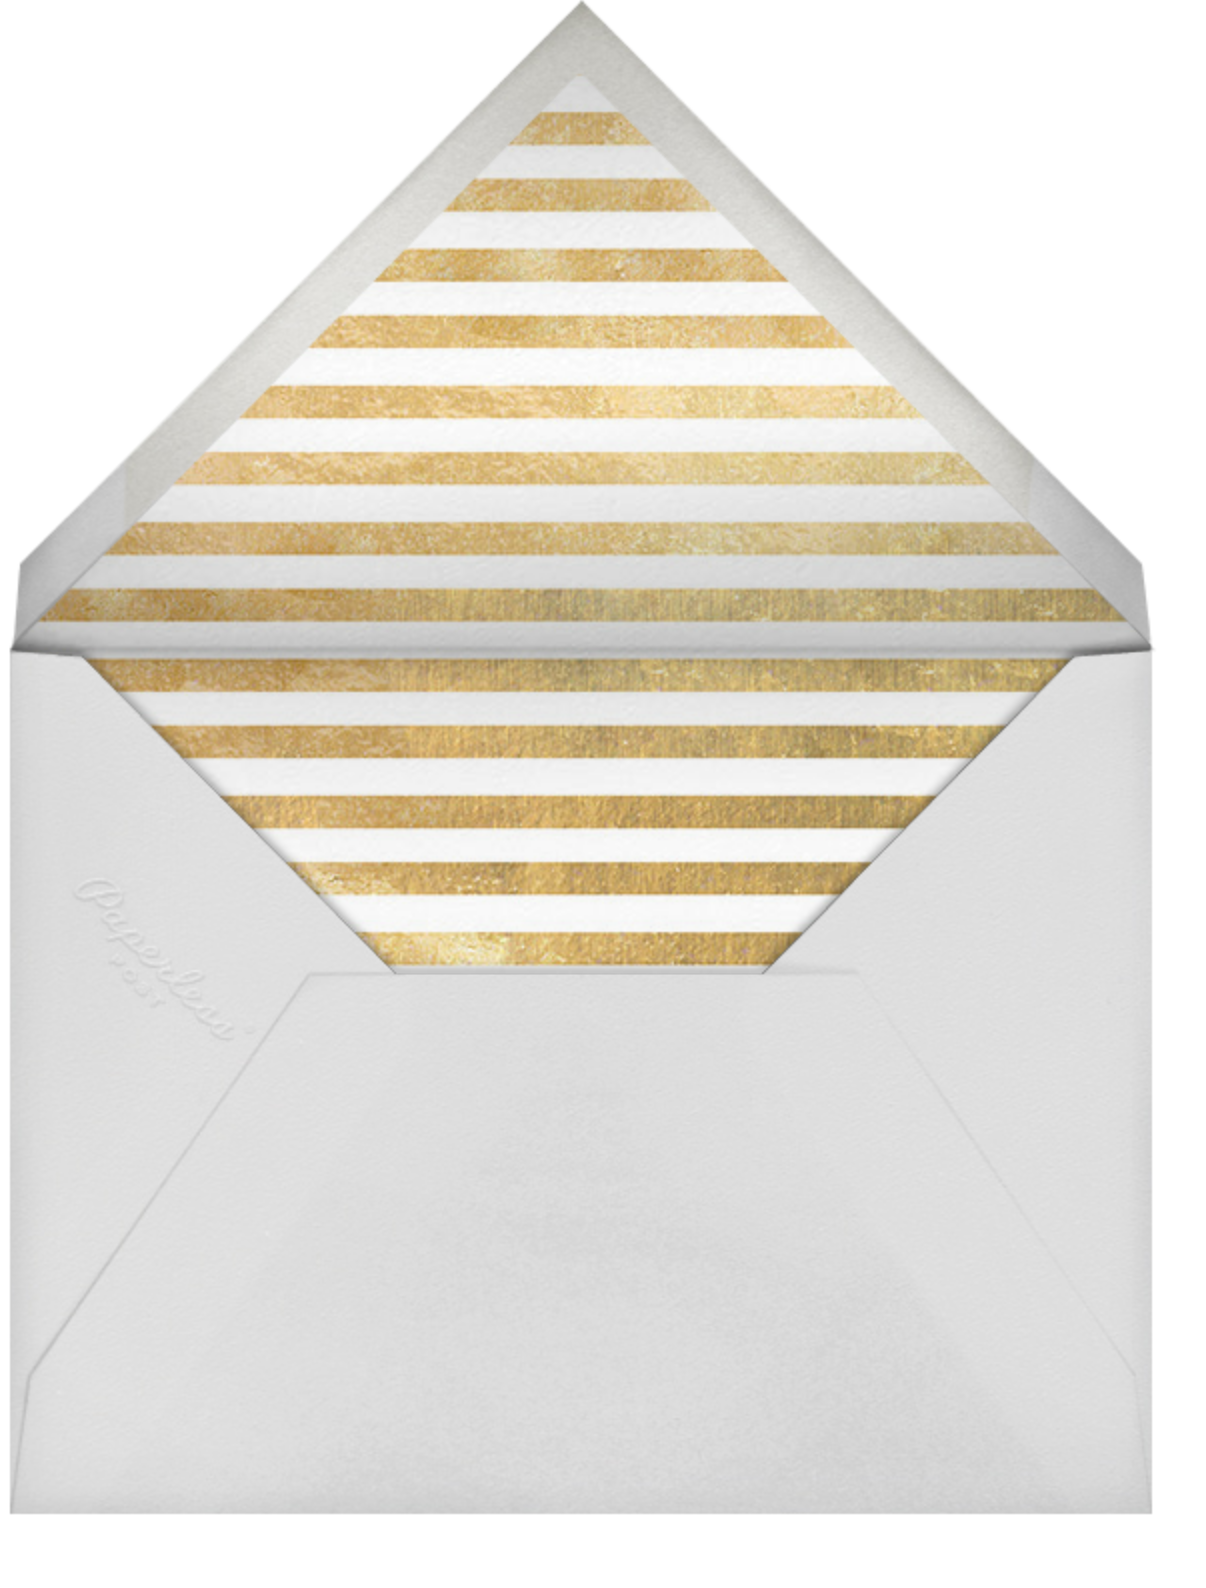 In Tent to Party - kate spade new york - Engagement party - envelope back